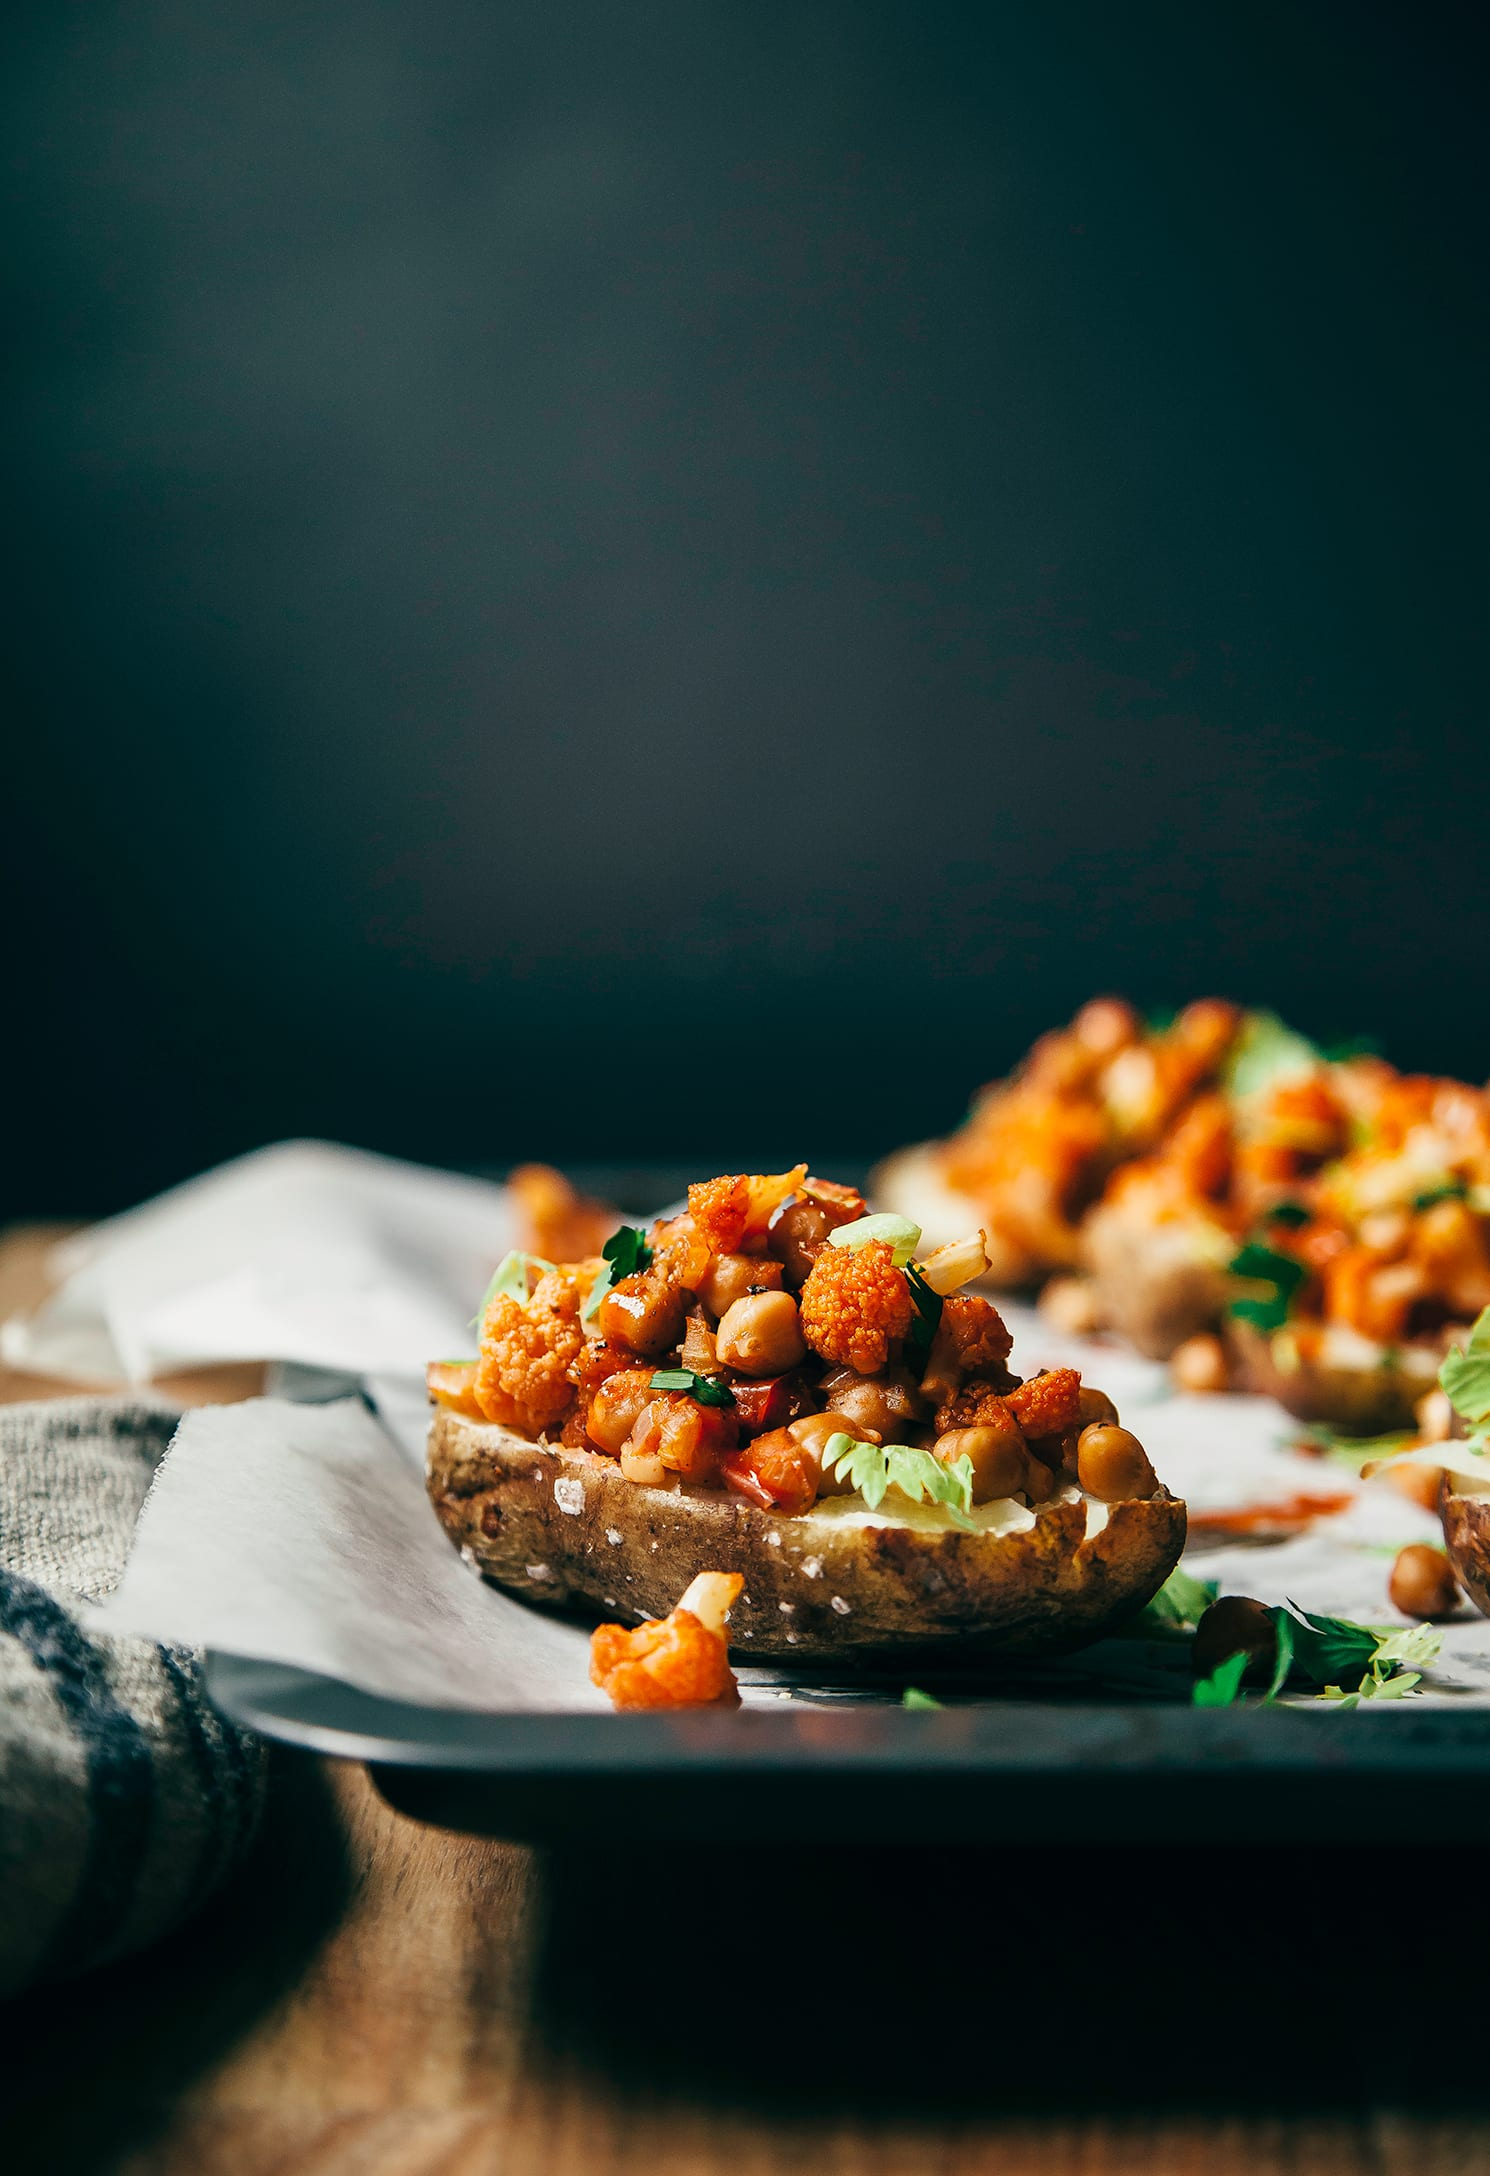 A head-on shot of a baked potato half filled with cauliflower, chickpeas, and Buffalo-style hot sauce.